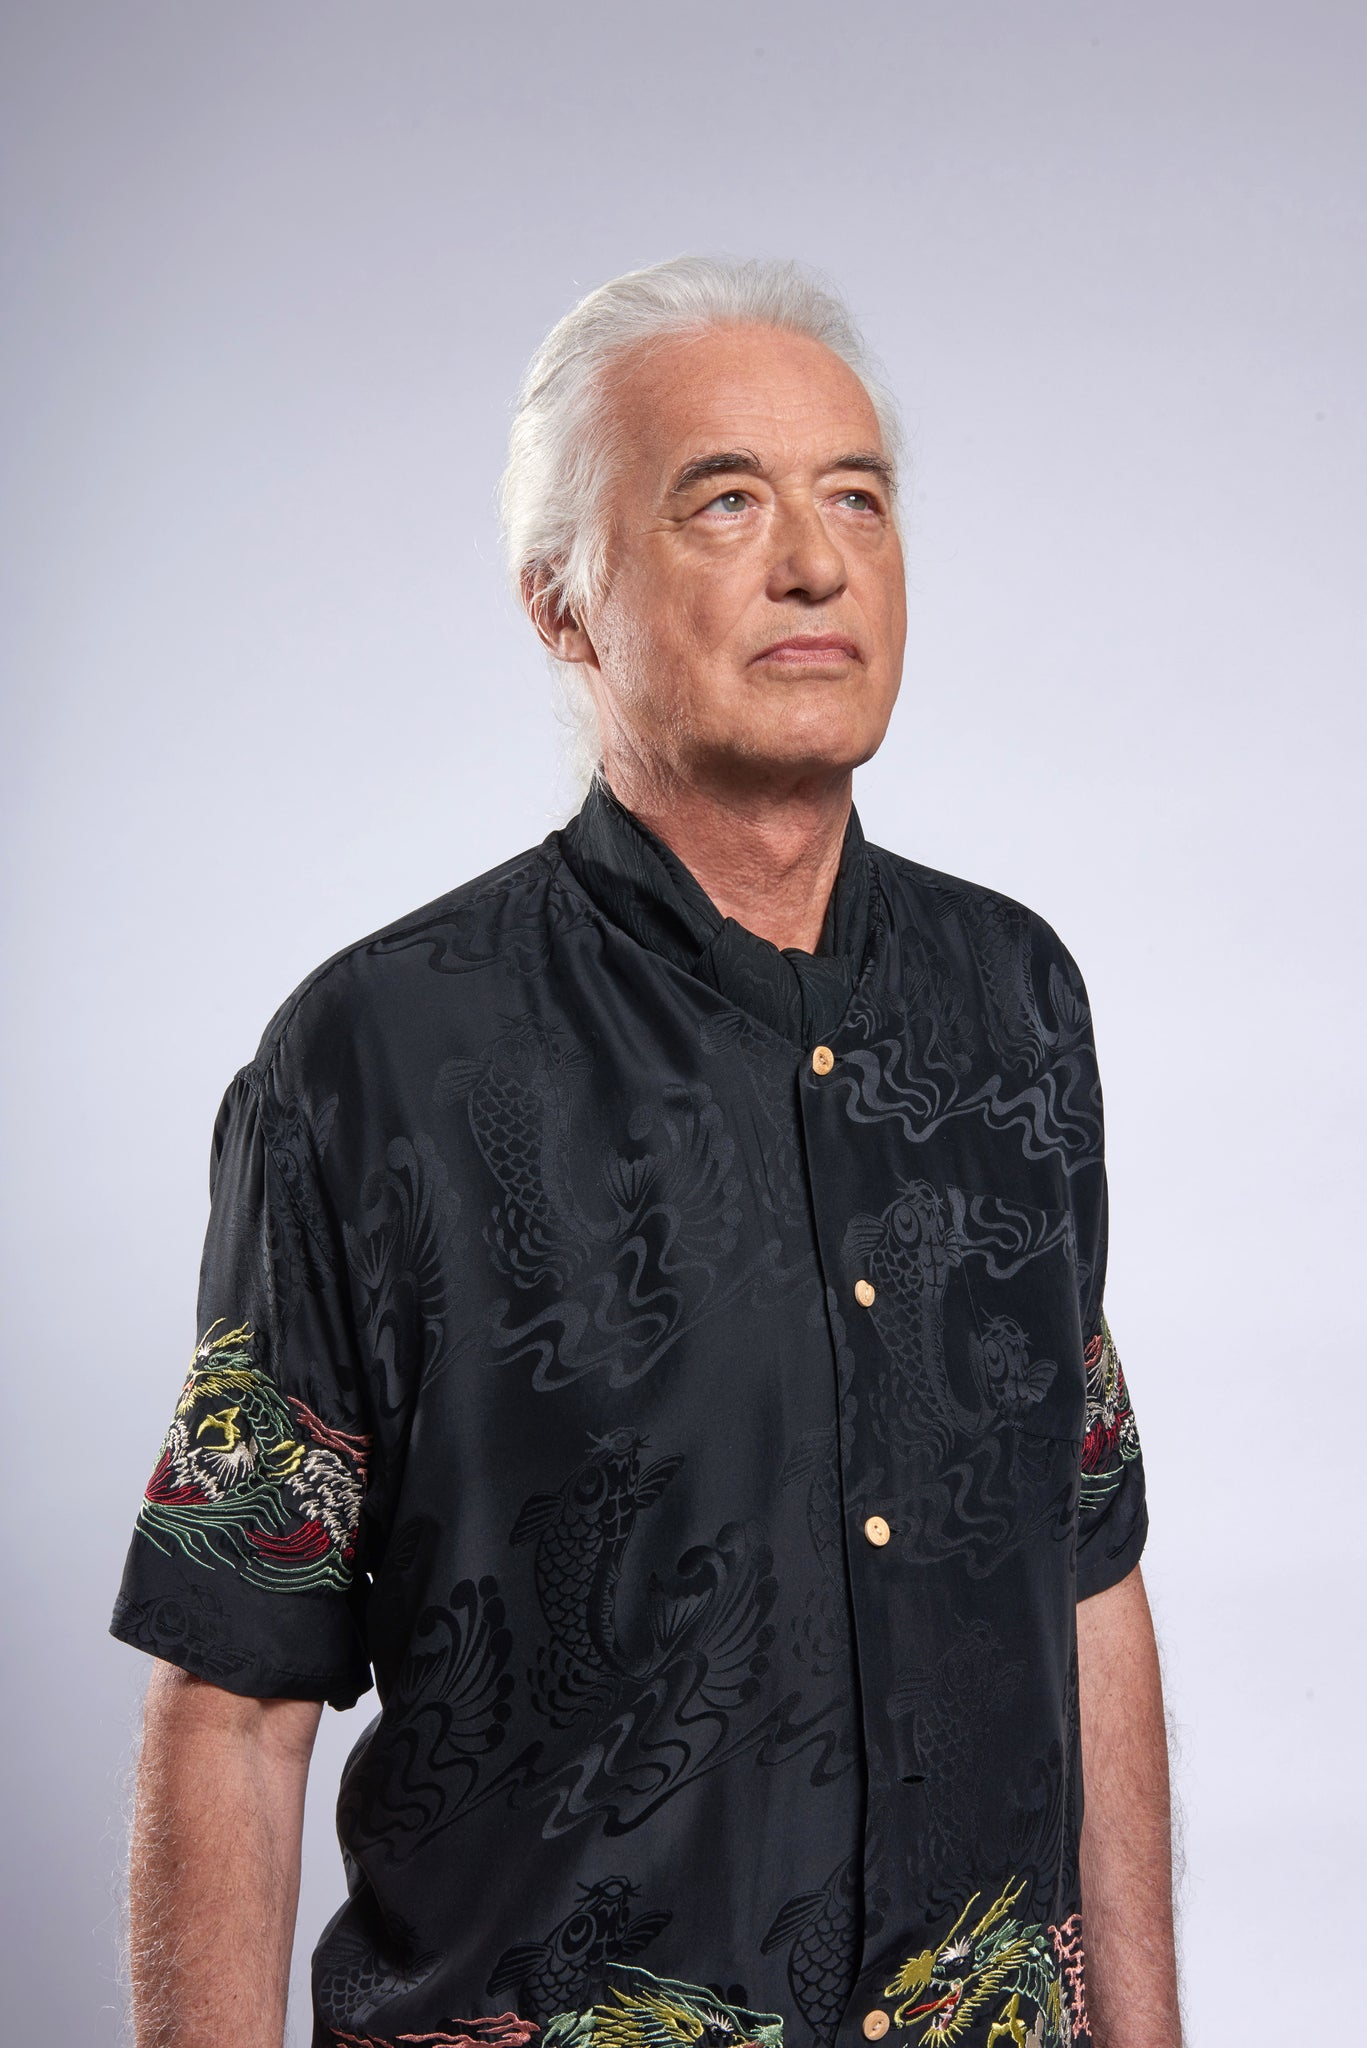 Jimmy Page - Led Zeppelin 50 years anniversary portrait